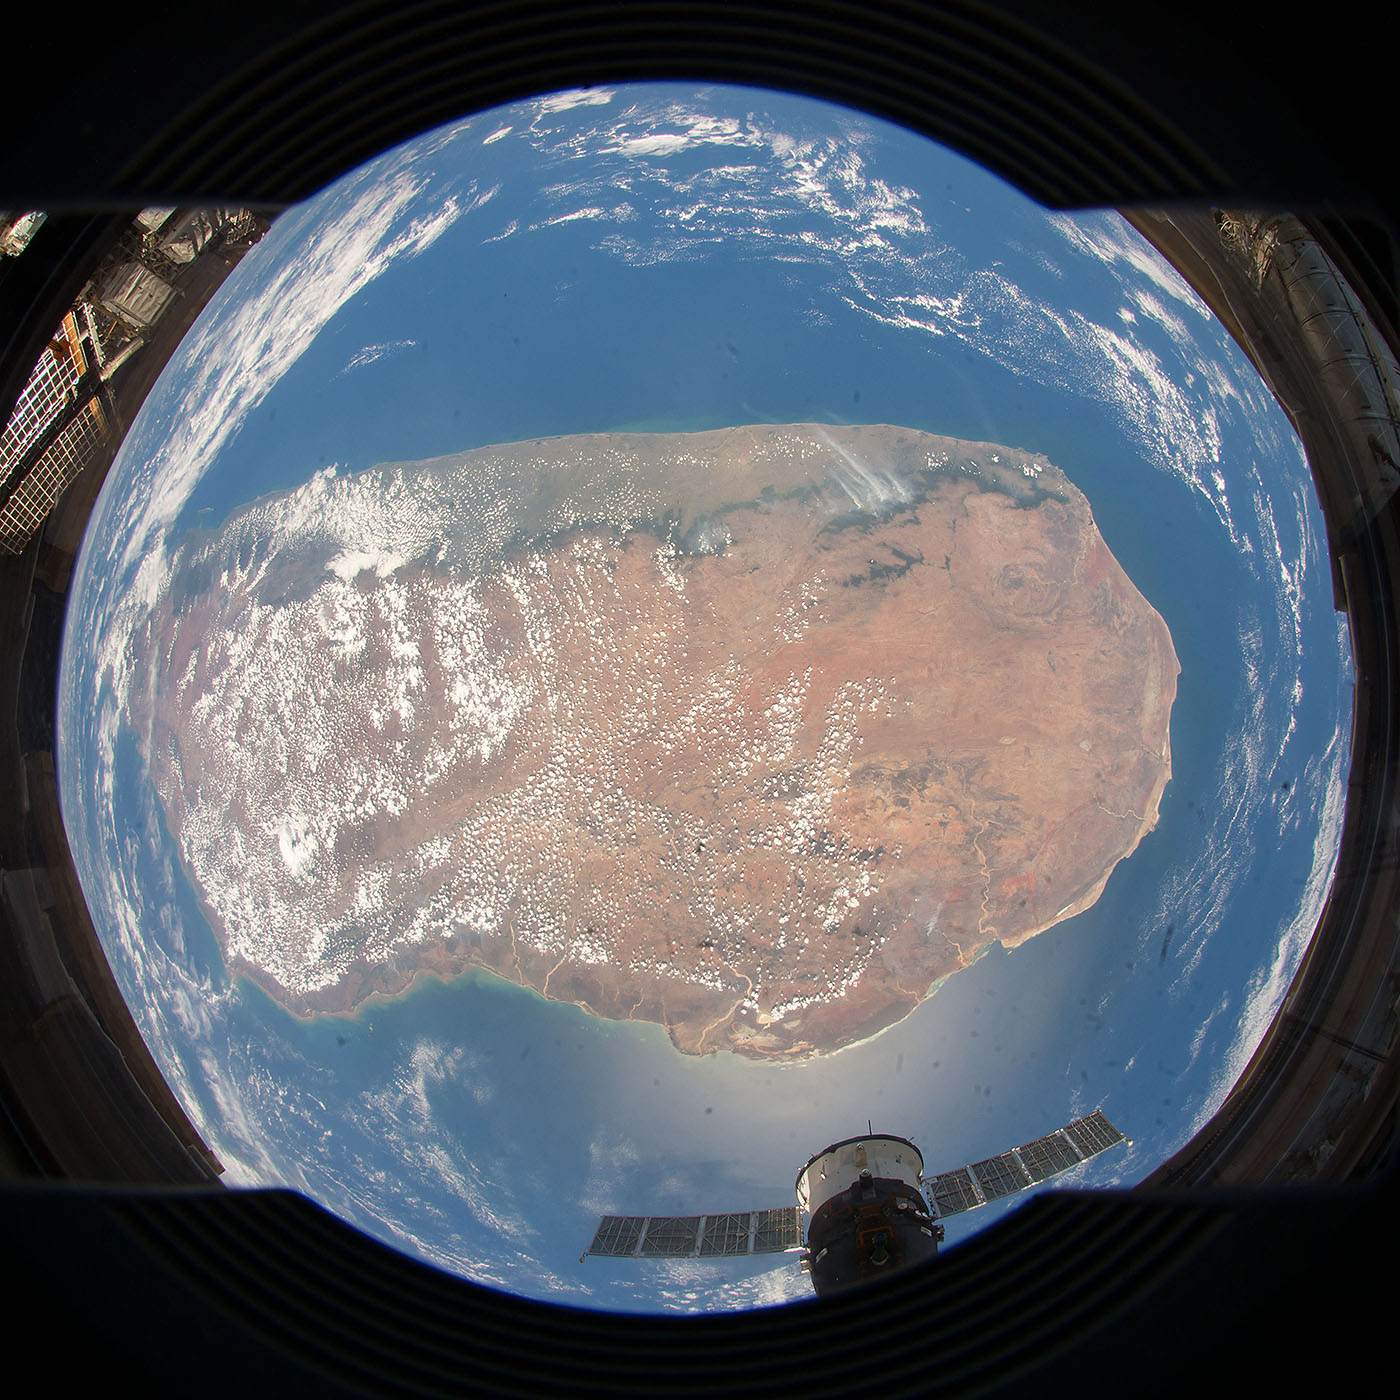 madagascar from space